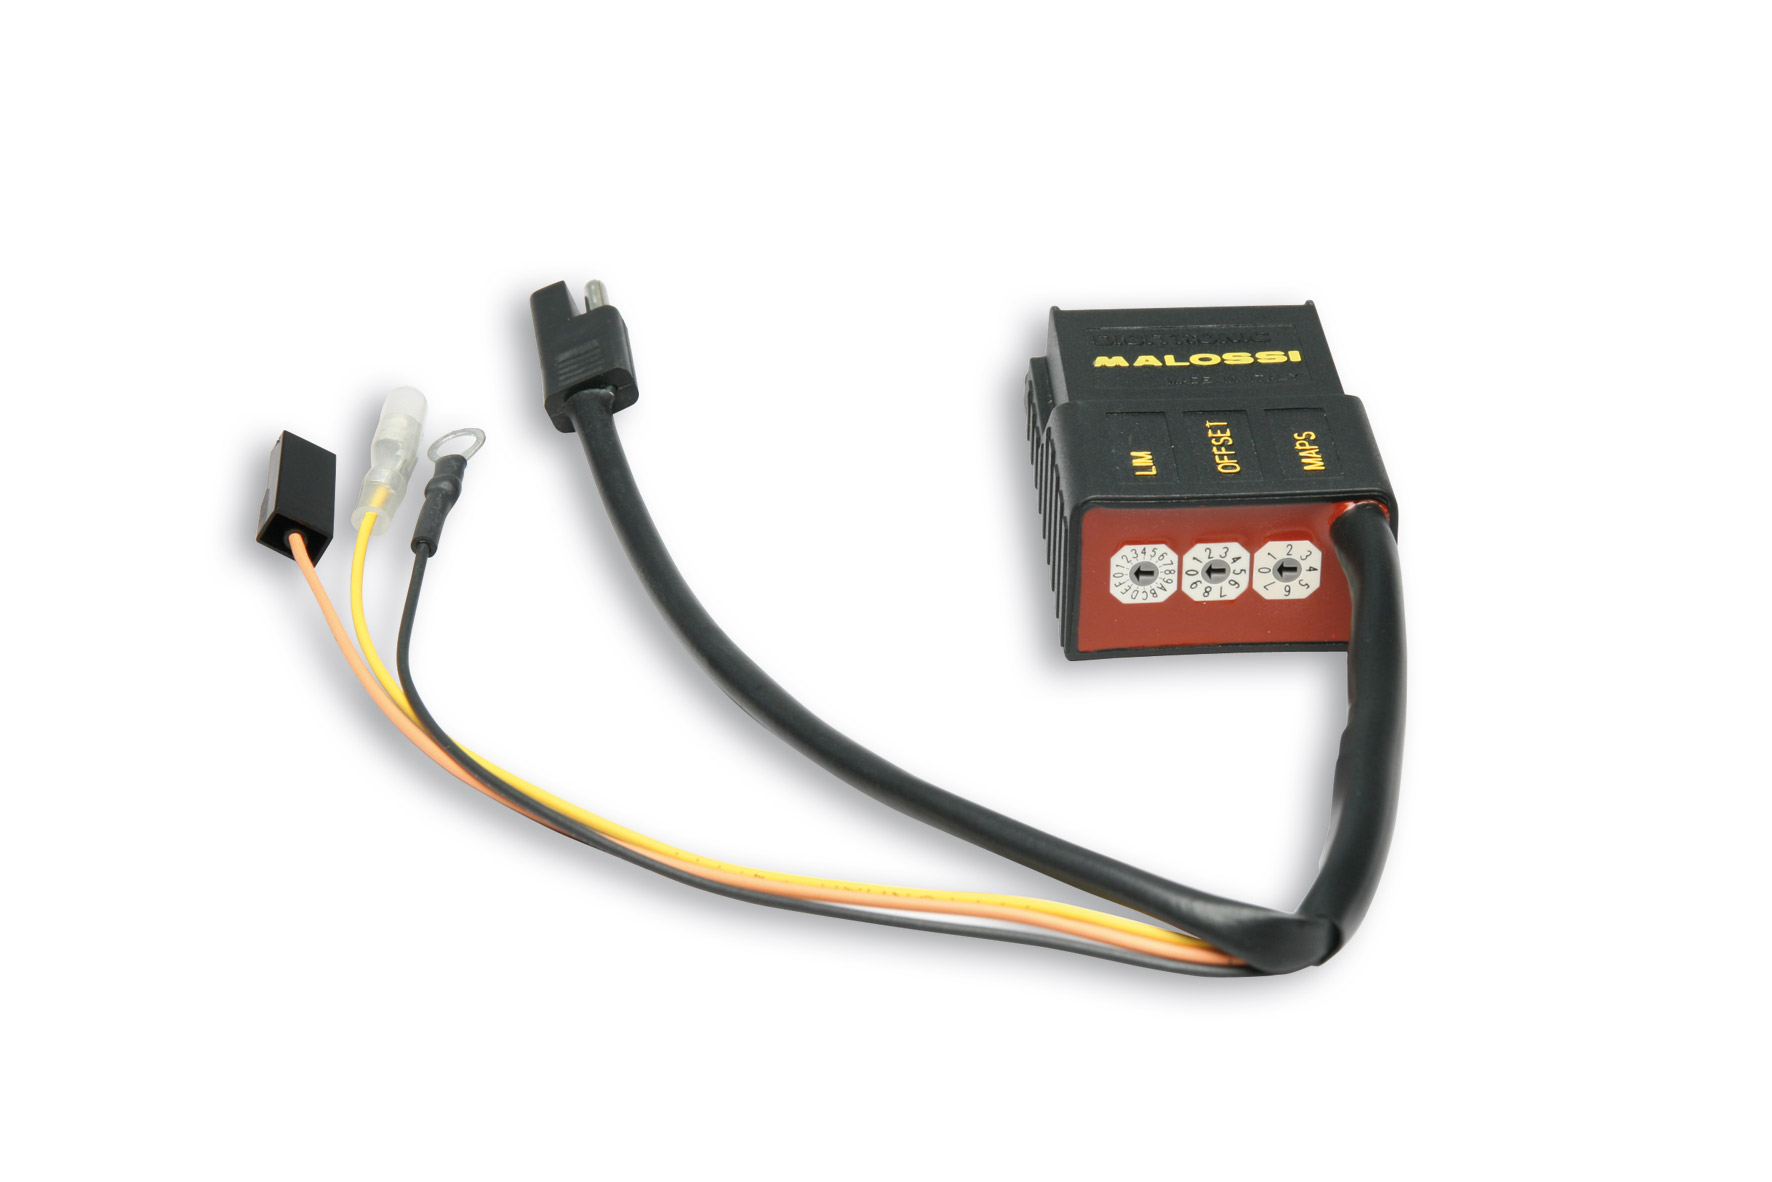 MHR TEAM DIGITRONIC-TRIMMER digital electronic controller - Spare part for ignitions 5514688-5514689-5514690-5514691-5515001-5515002-5515003-5516771 : out of production